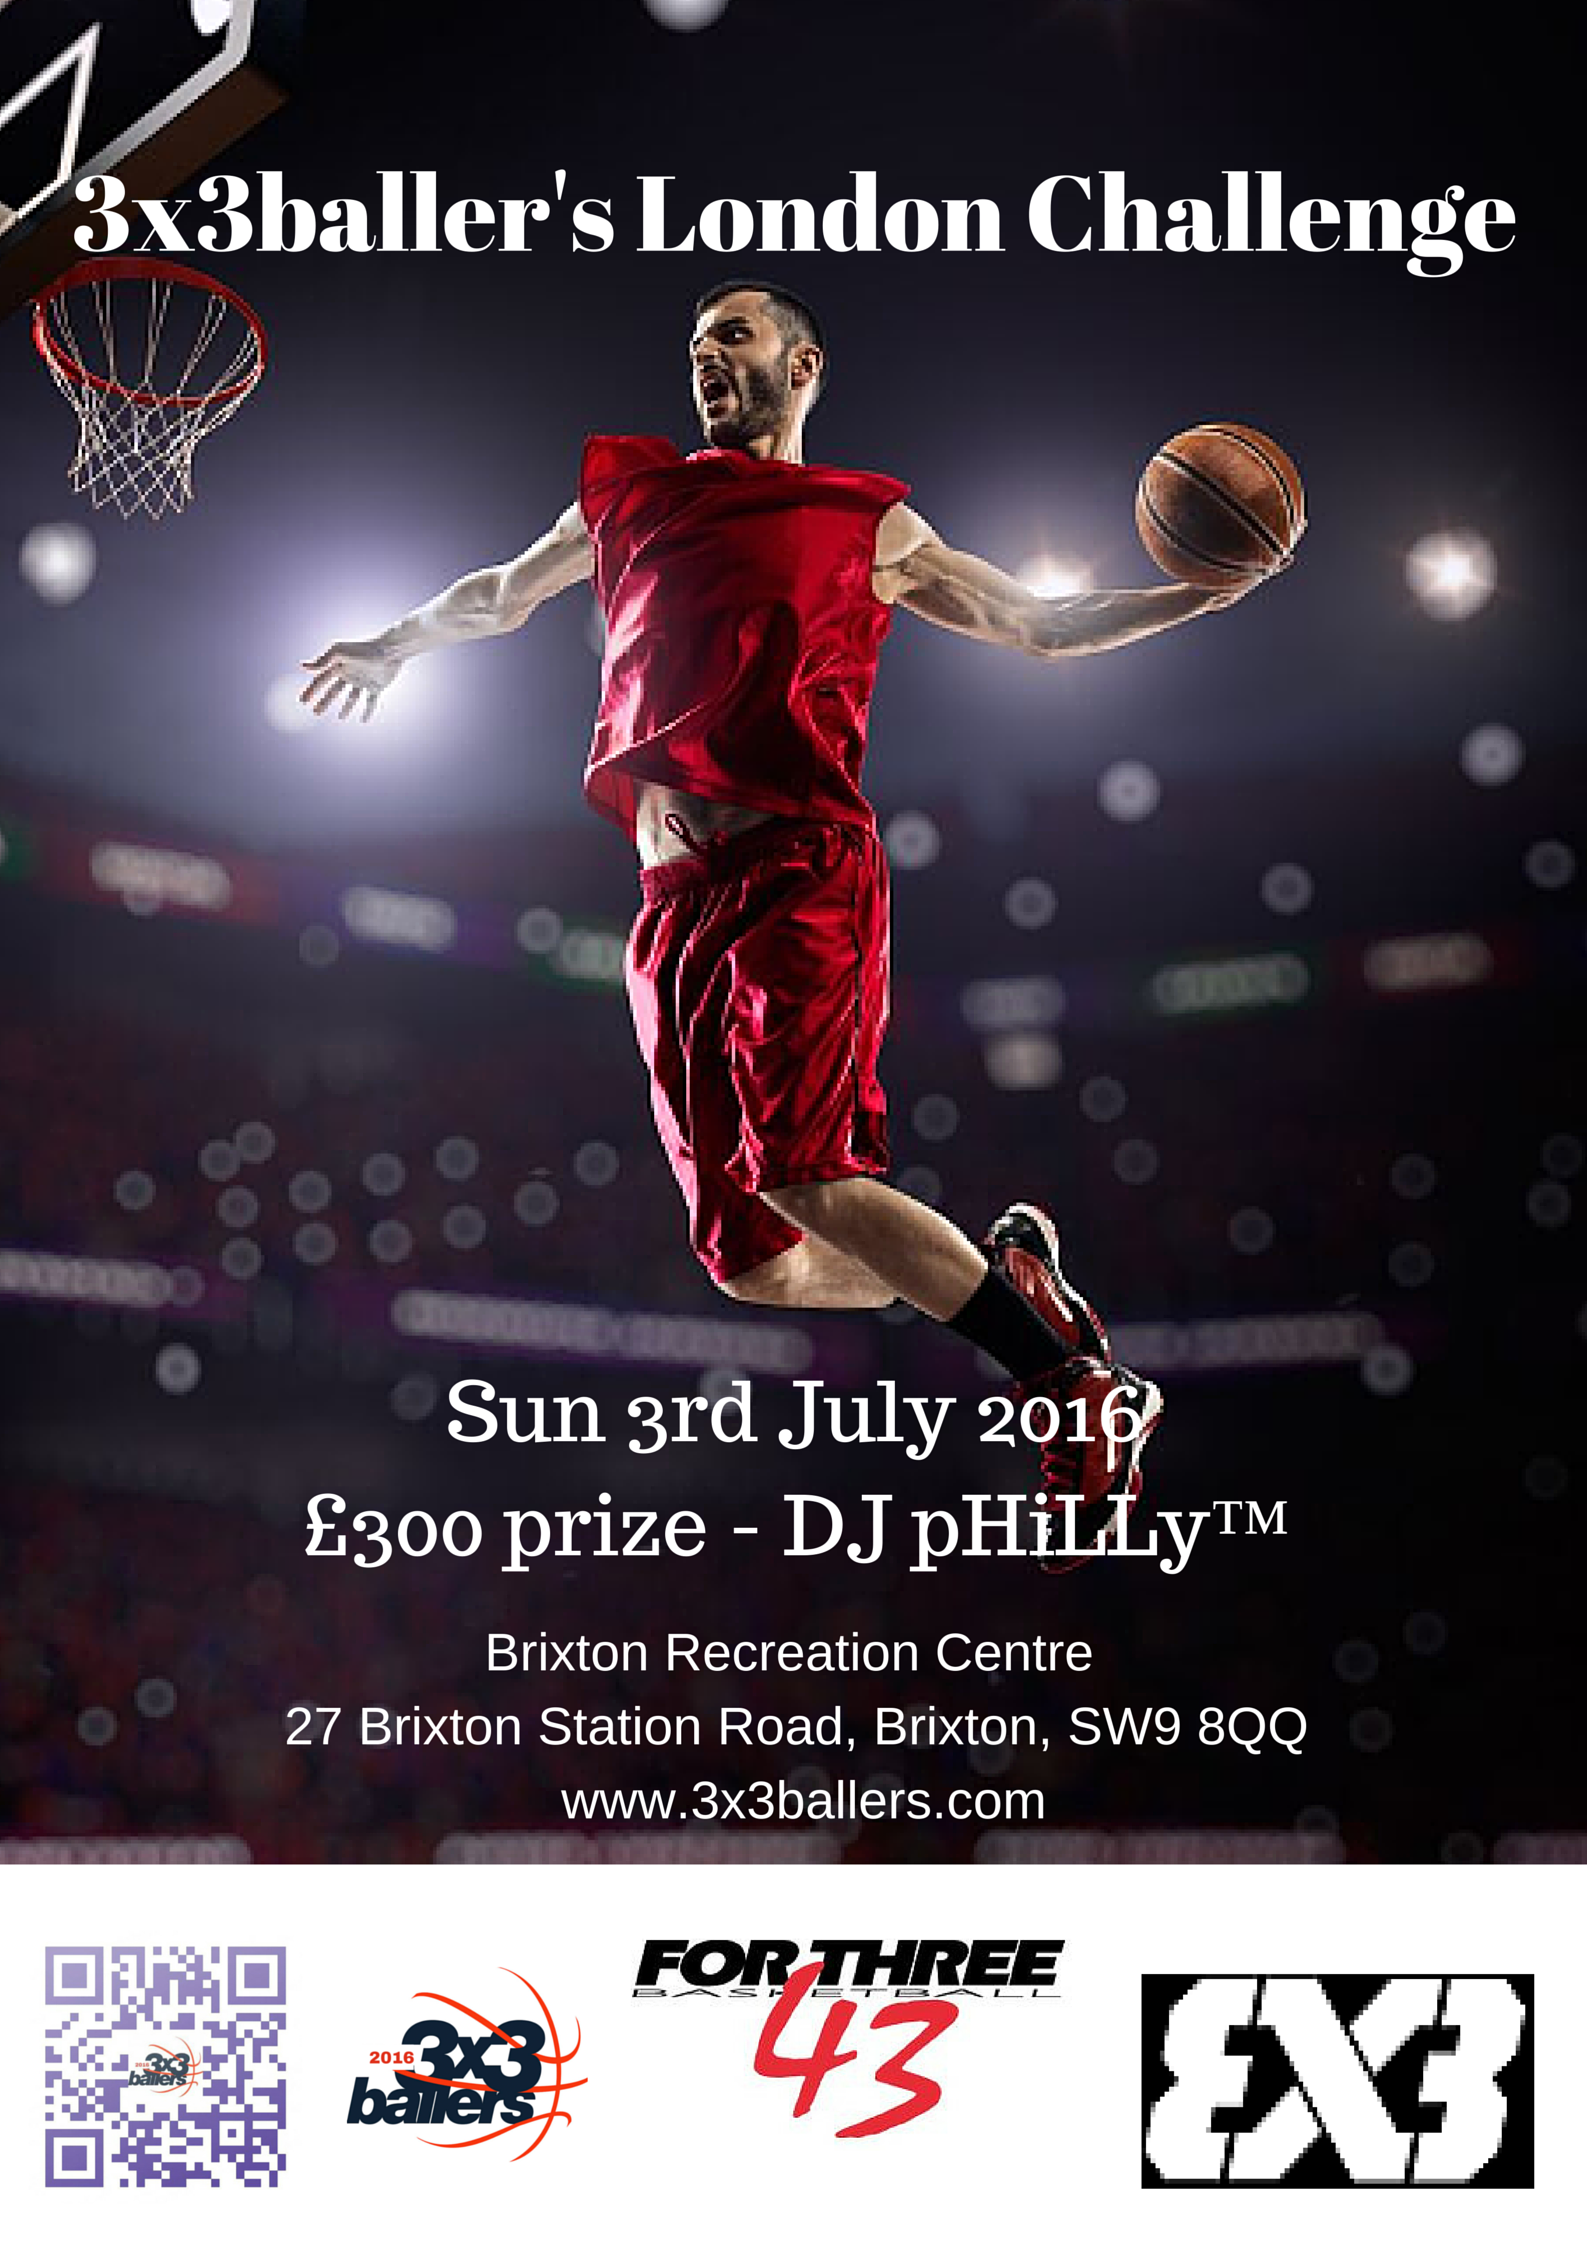 Poster design challenge - The Poster For Our 3rd July London Challenge A Fiba Endorsed 3x3 Basketball Tournament